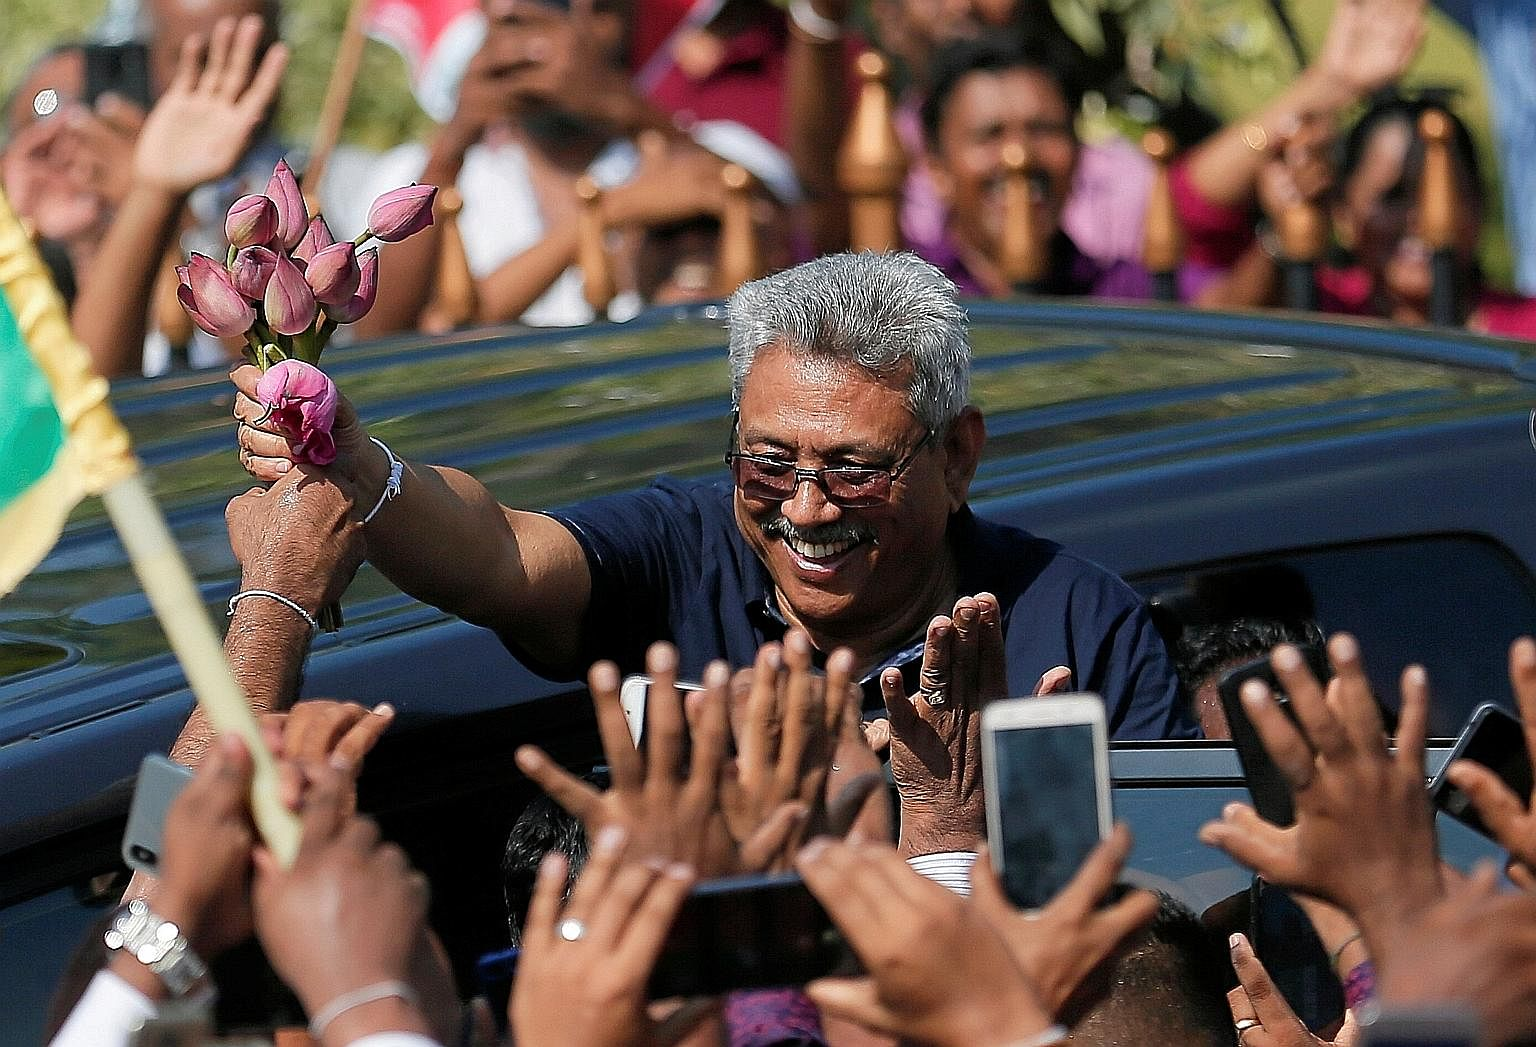 Sri Lanka's former defence secretary Gotabaya Rajapaksa waving to supporters. He is facing lawsuits in the US for allegedly instigating and authorising the extrajudicial killing of a journalist and war crimes against Tamils.